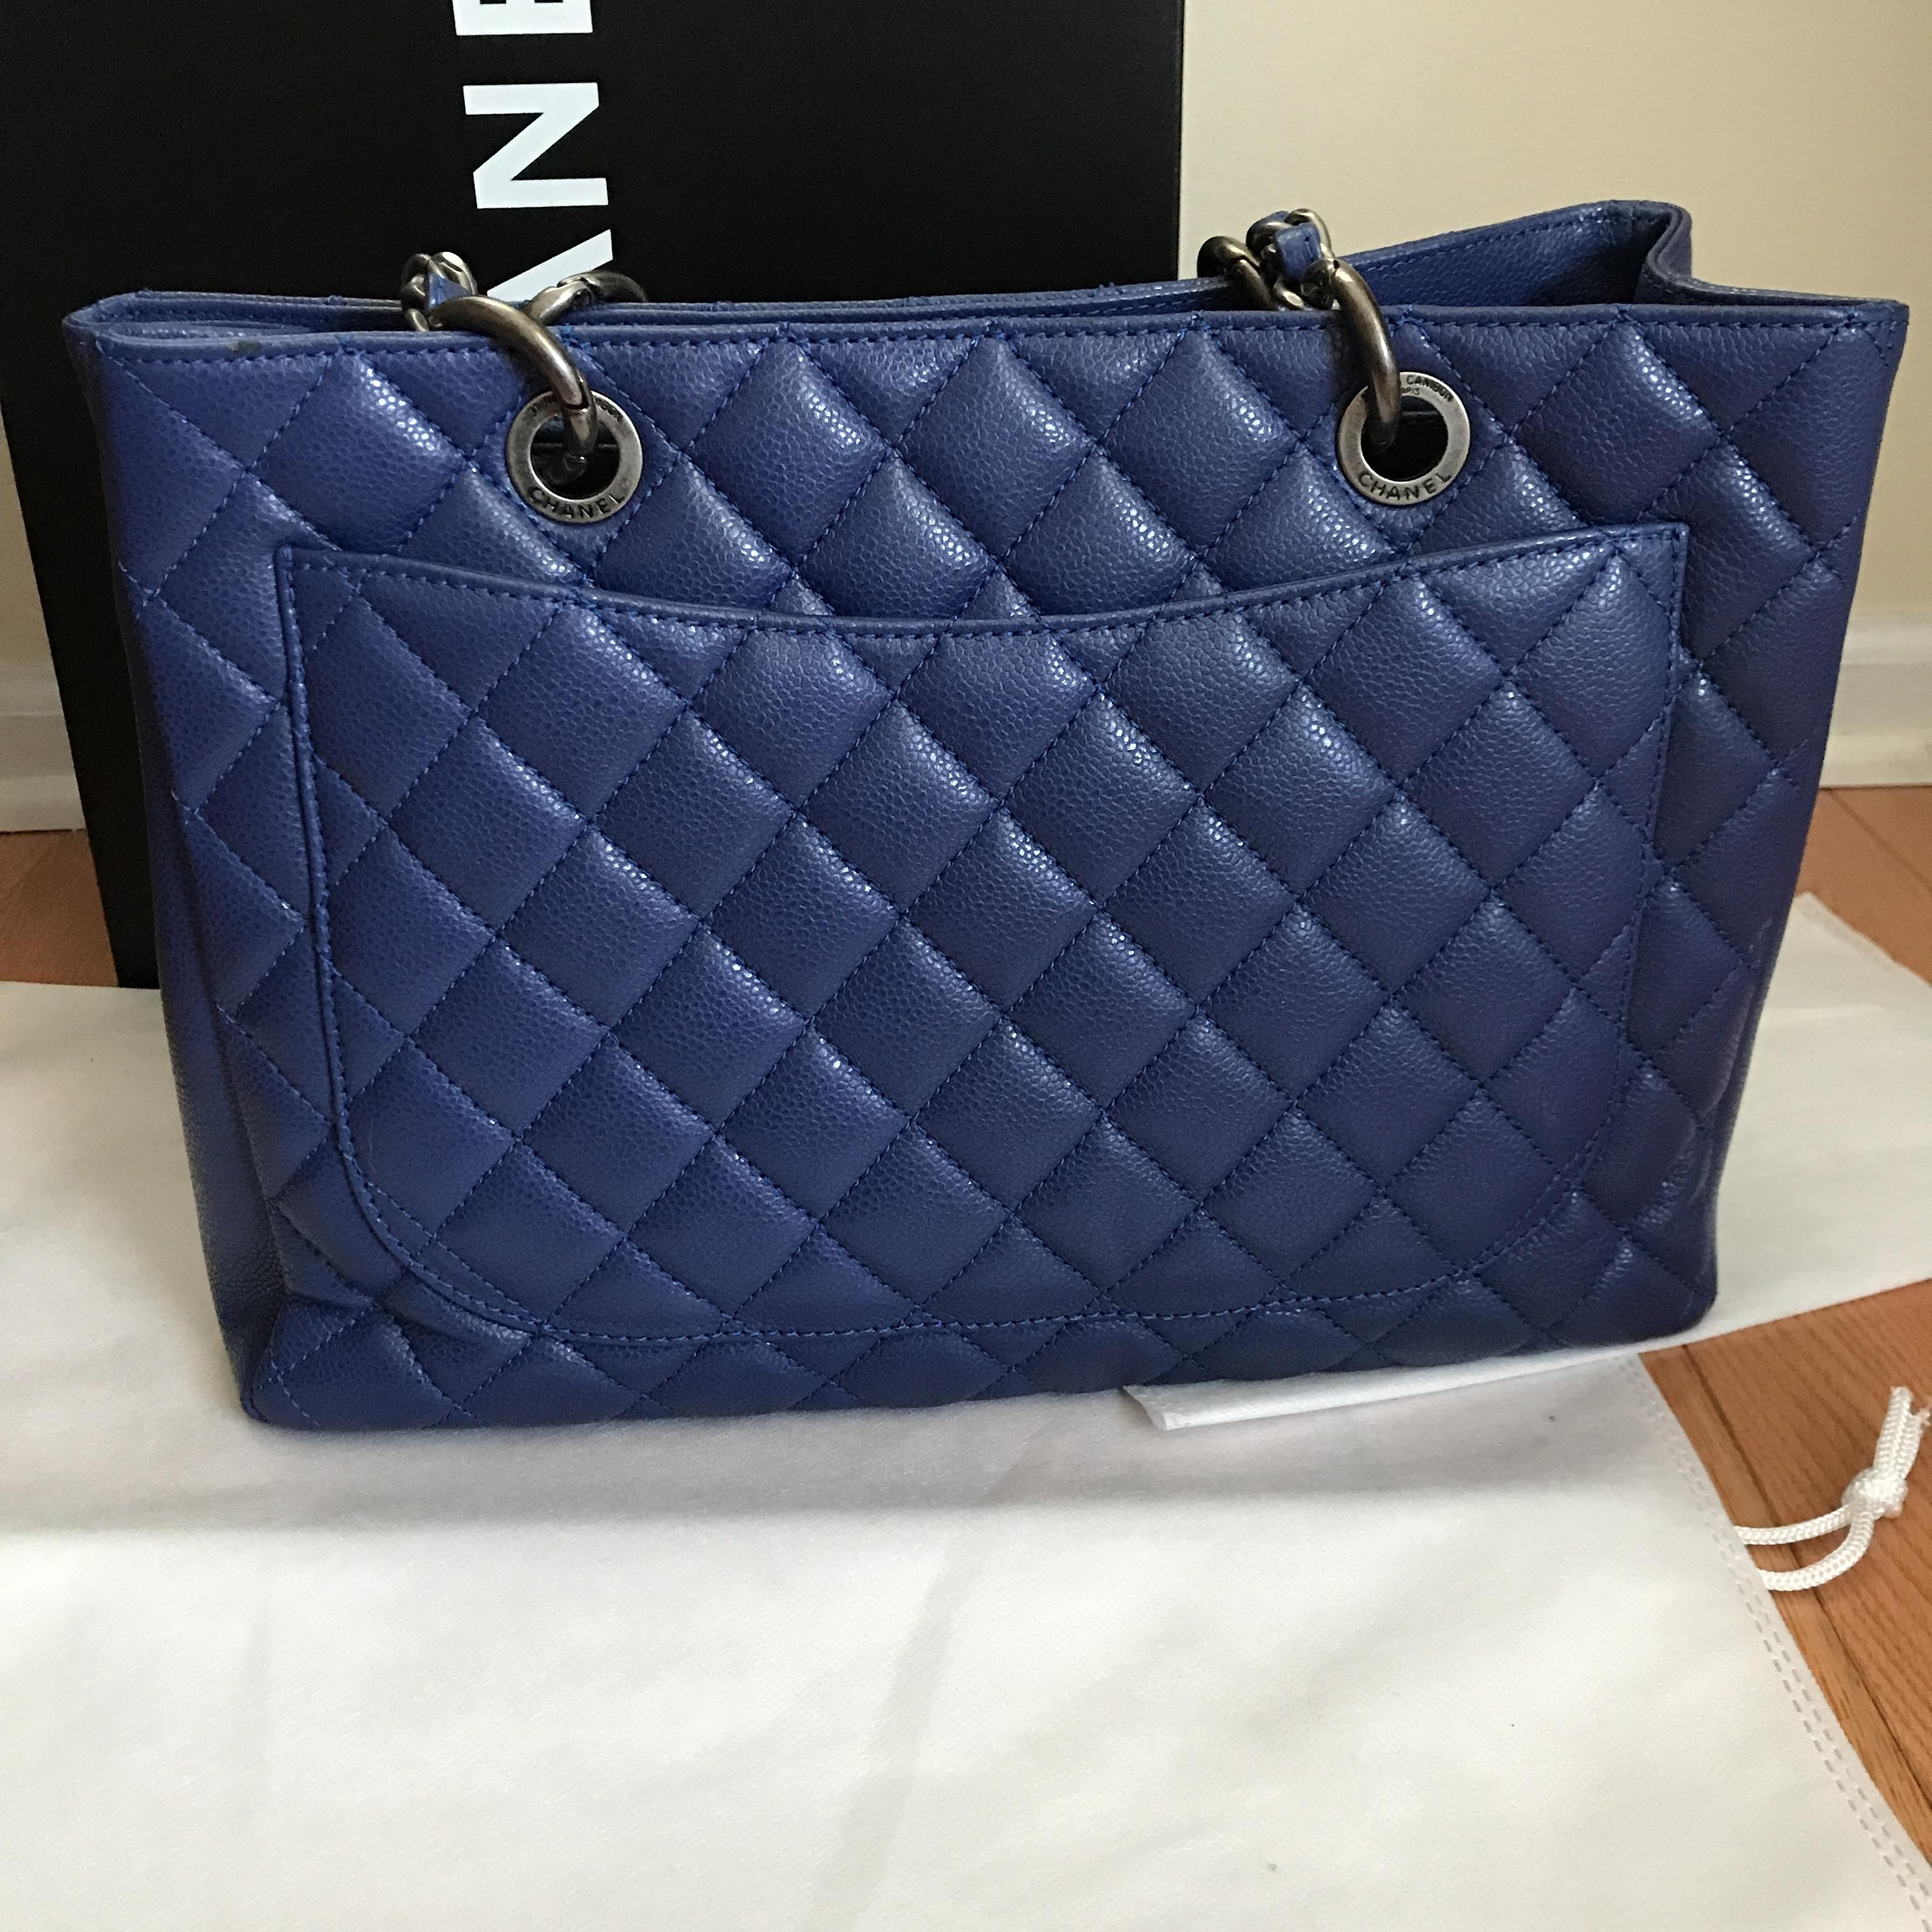 chanel blue leather shopping tote gst grand shopper tote